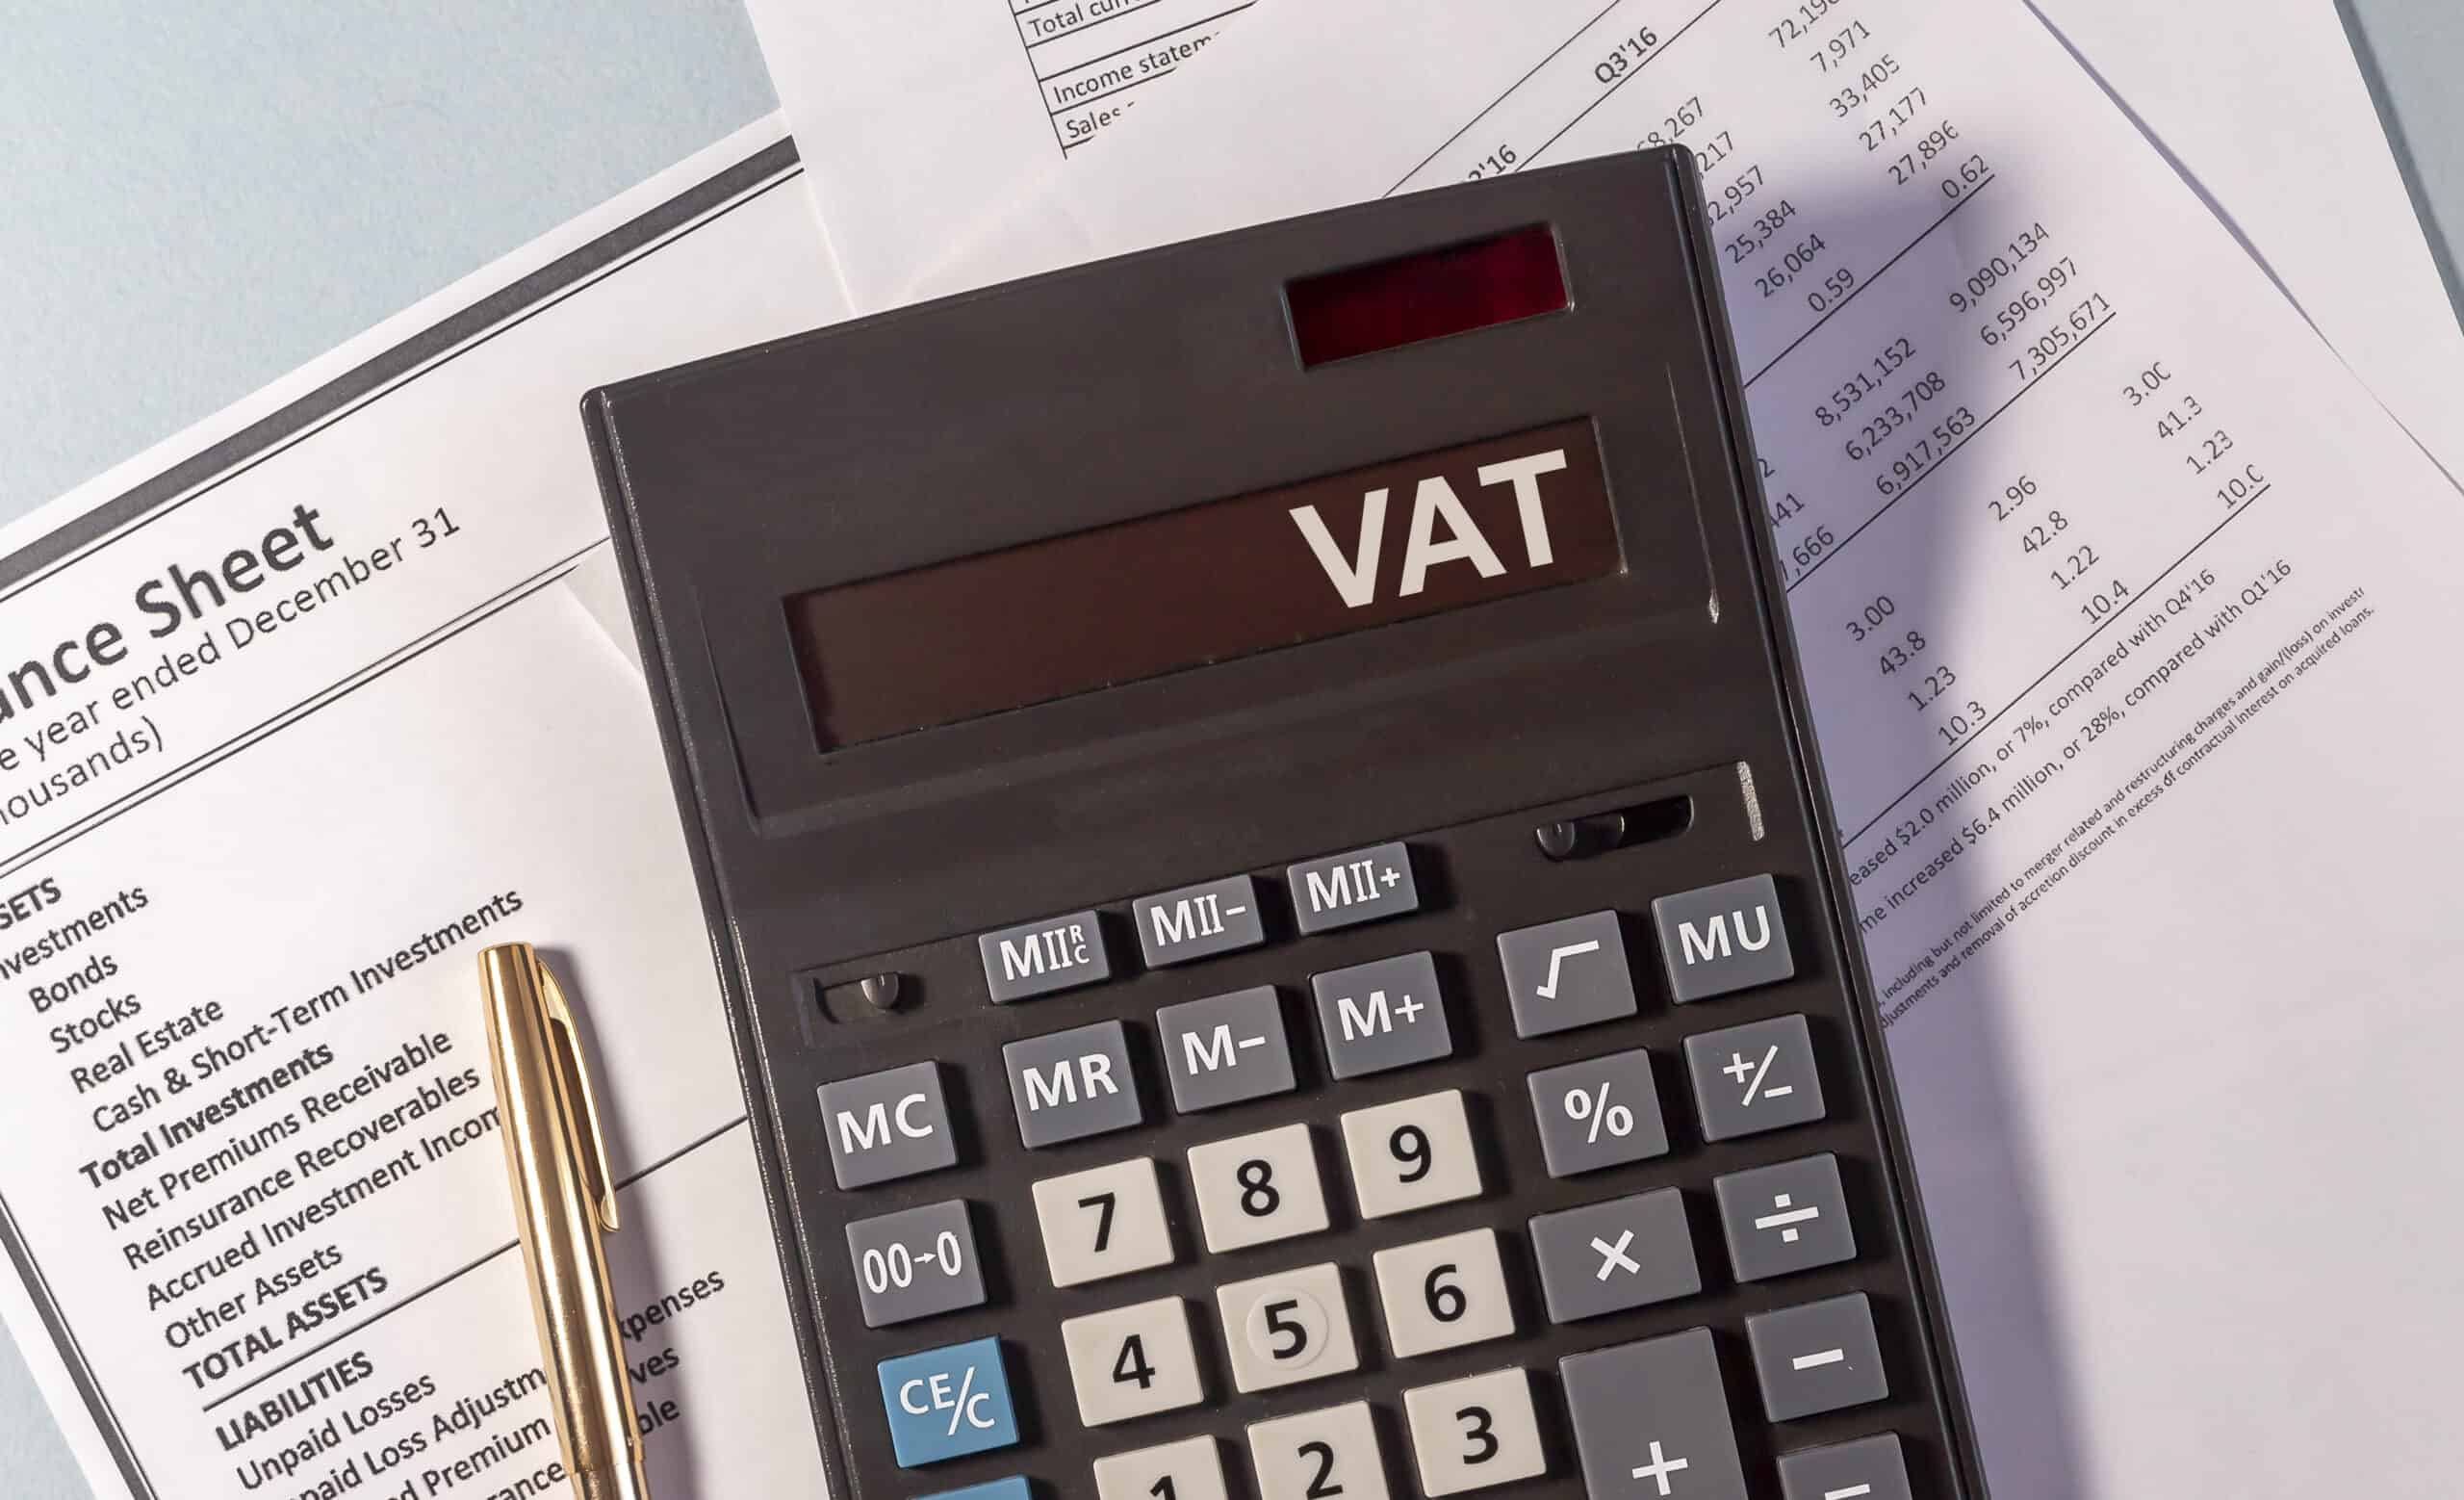 VAT word on display of calculator on postponed import vat accounting papers documents and golden pen